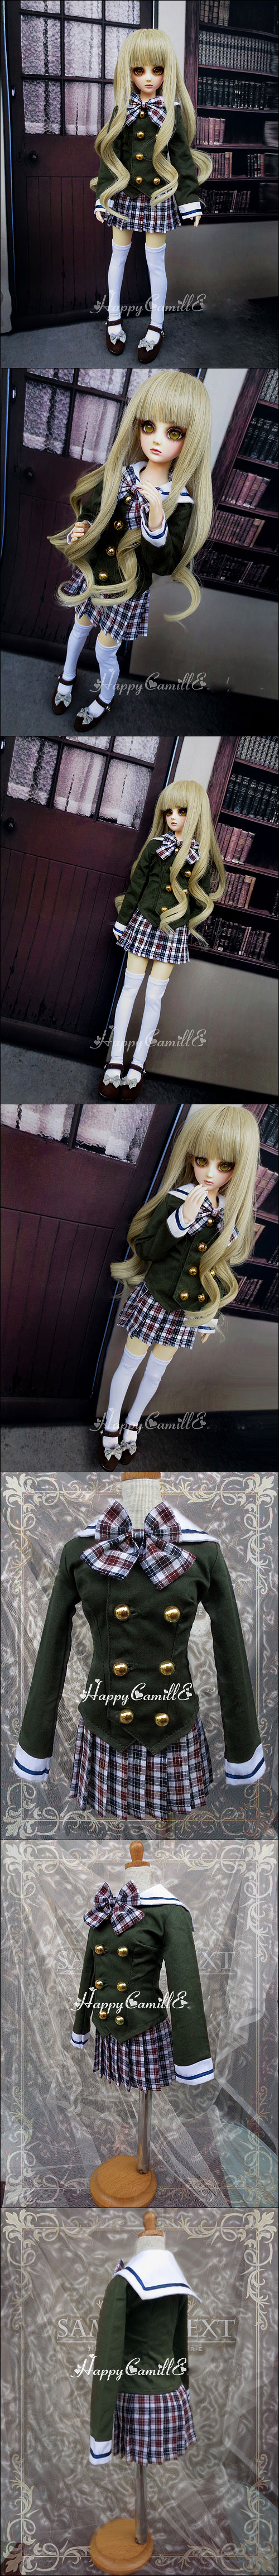 BJD Clothes Western-style Clothes Girl for SD/MSD Ball-jointed Doll